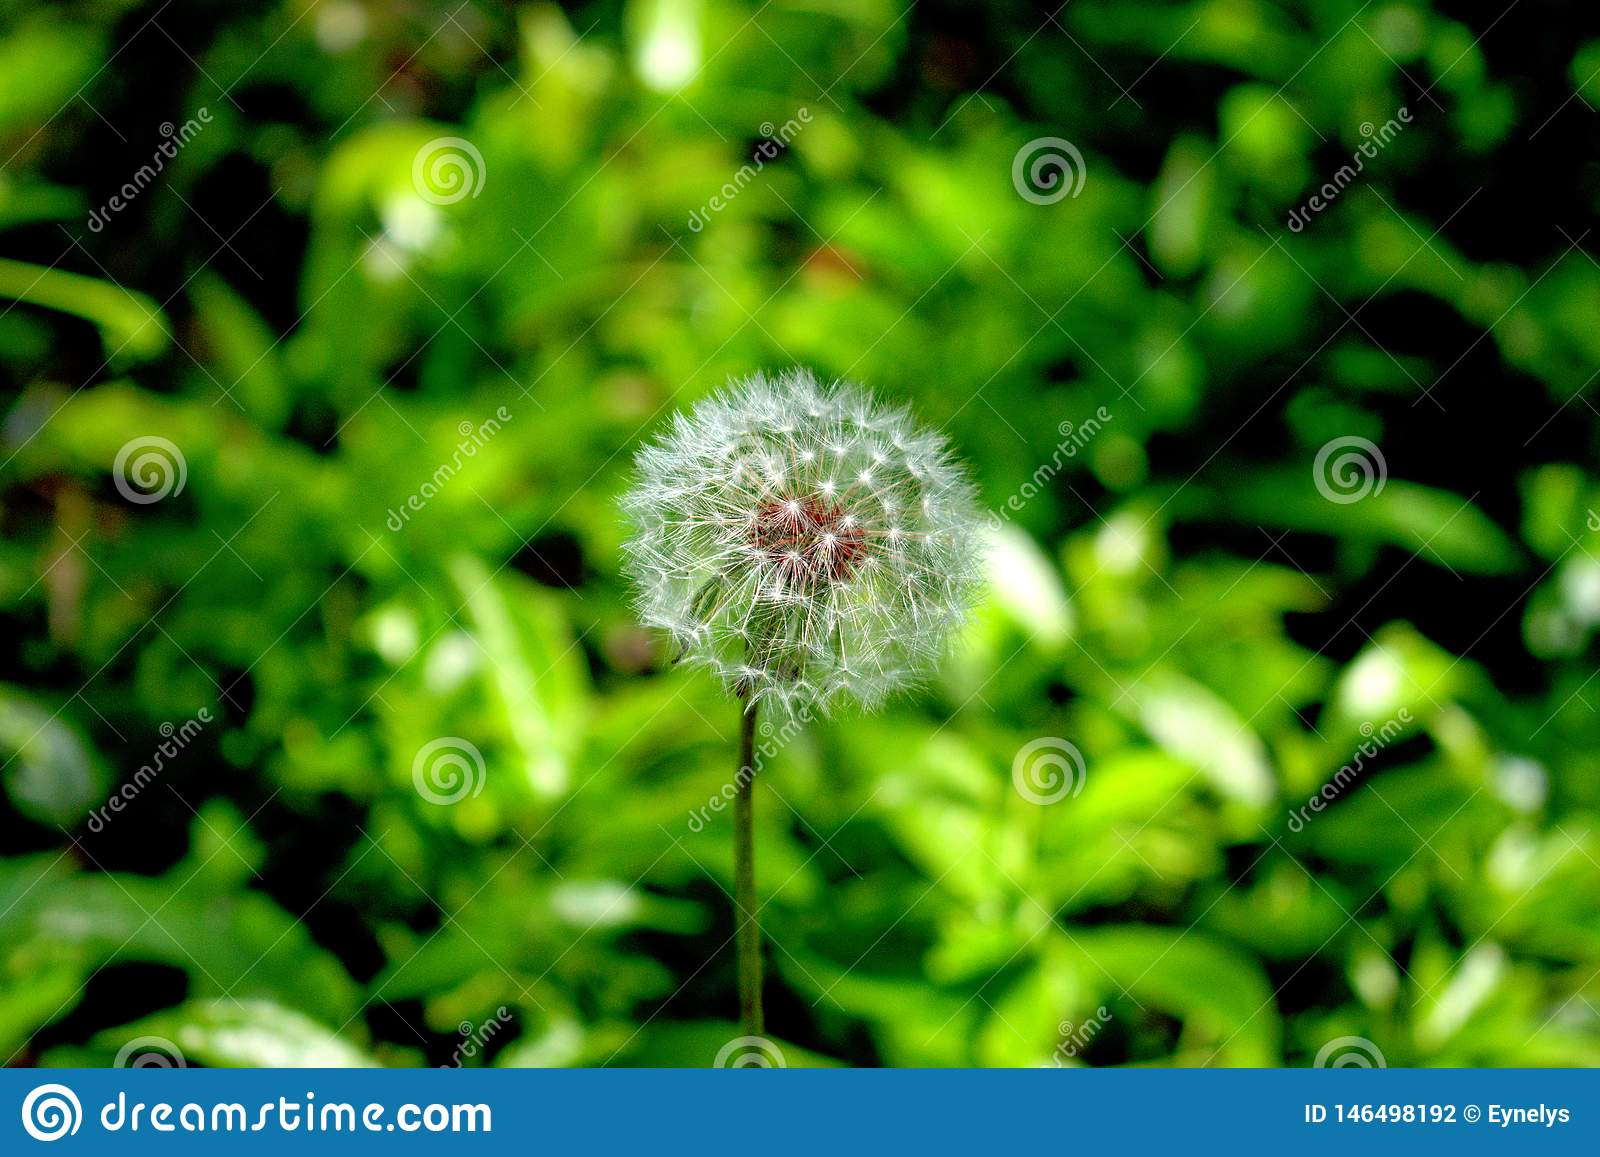 Blow on a Dandelion and Make a Wish